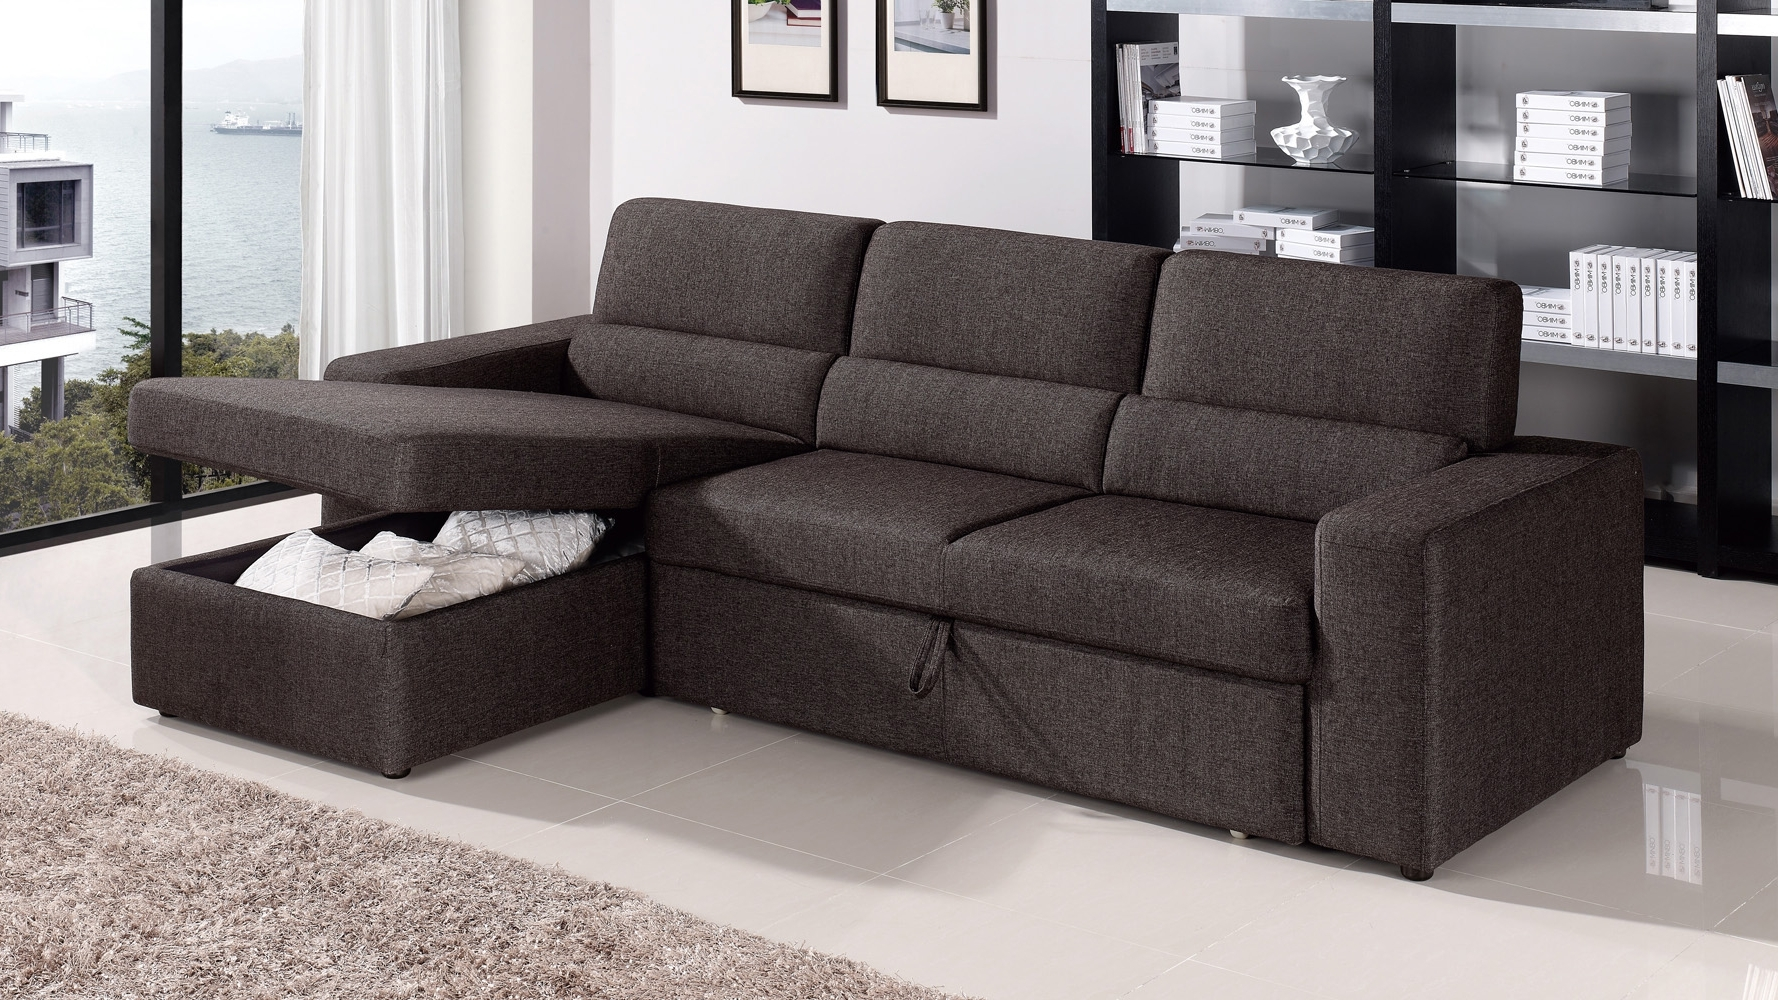 Fashionable Lancaster Pa Sectional Sofas With Regard To Furniture : Sleeper Sofa Portland Or Mattress Firm Zoominfo (View 4 of 20)